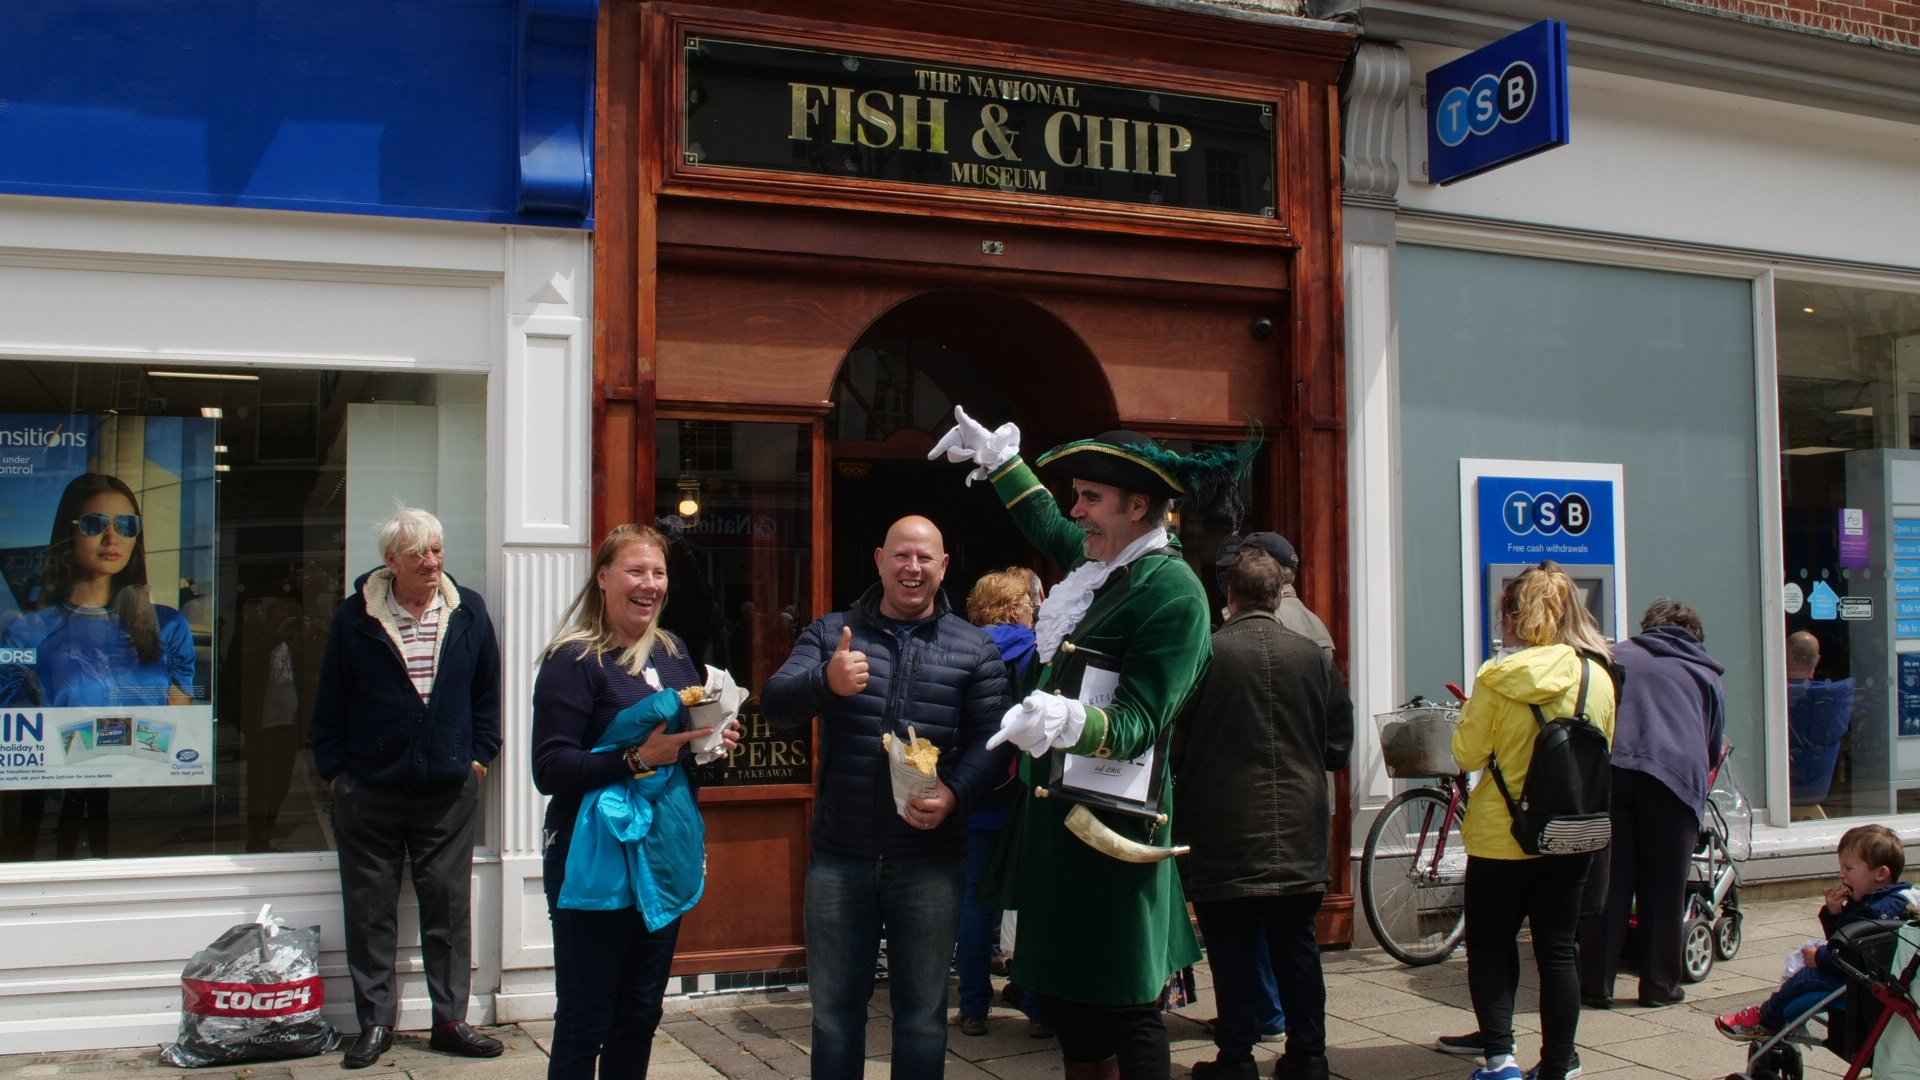 Customers pose with their fish and chips in York outside the National Fish & Chip Museum